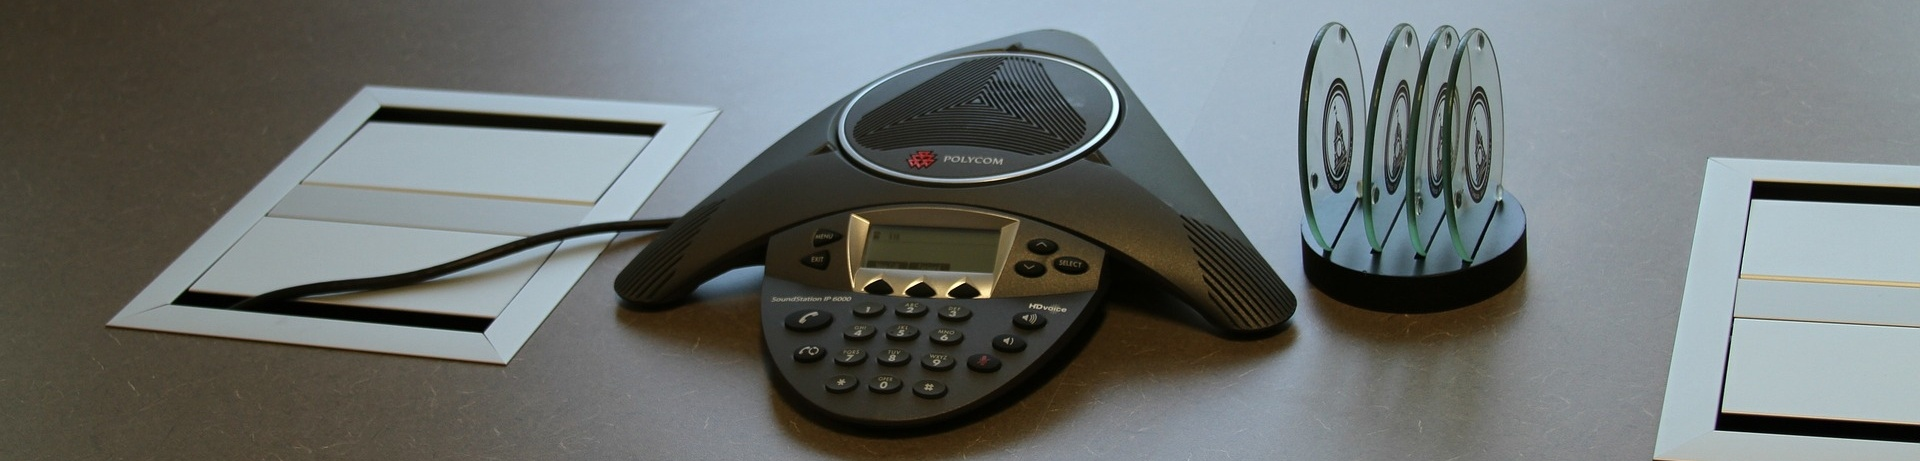 conference phone-634998-edited.jpg